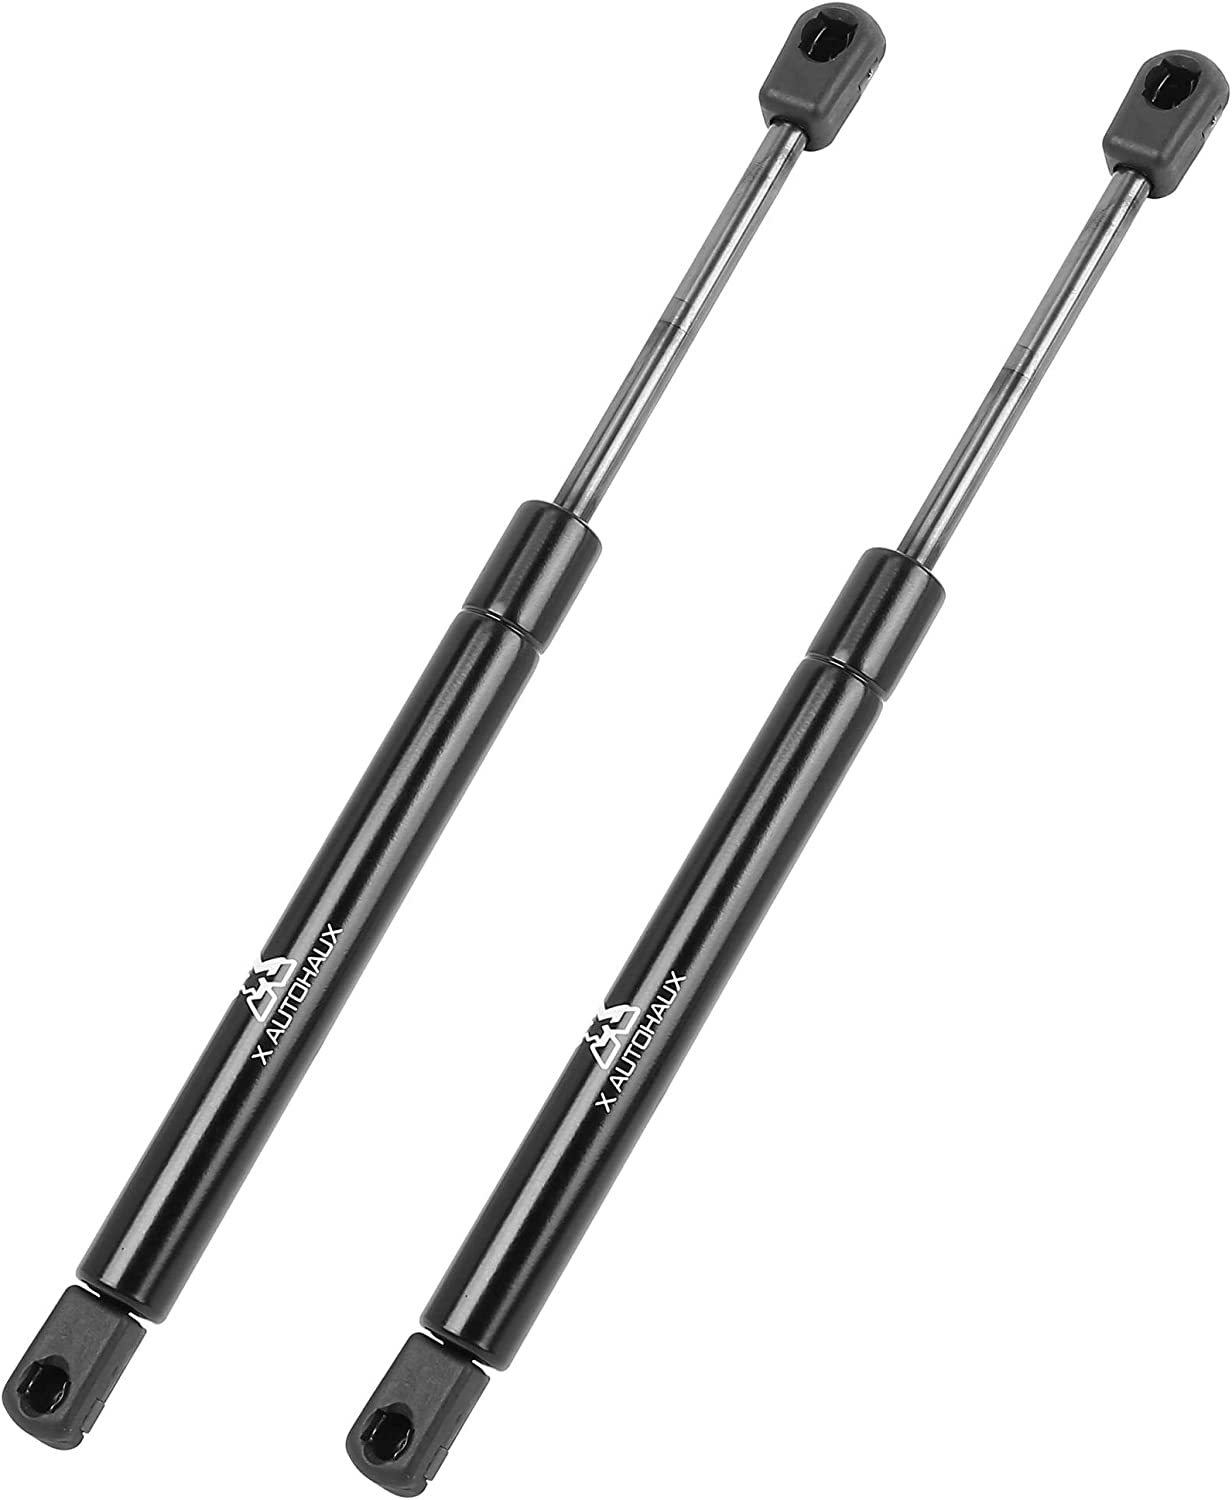 X AUTOHAUX 2pcs Rear Trunk Lift Supports Struts Shocks Gas Spring 15911948 for Cadillac CTS 2004-2007